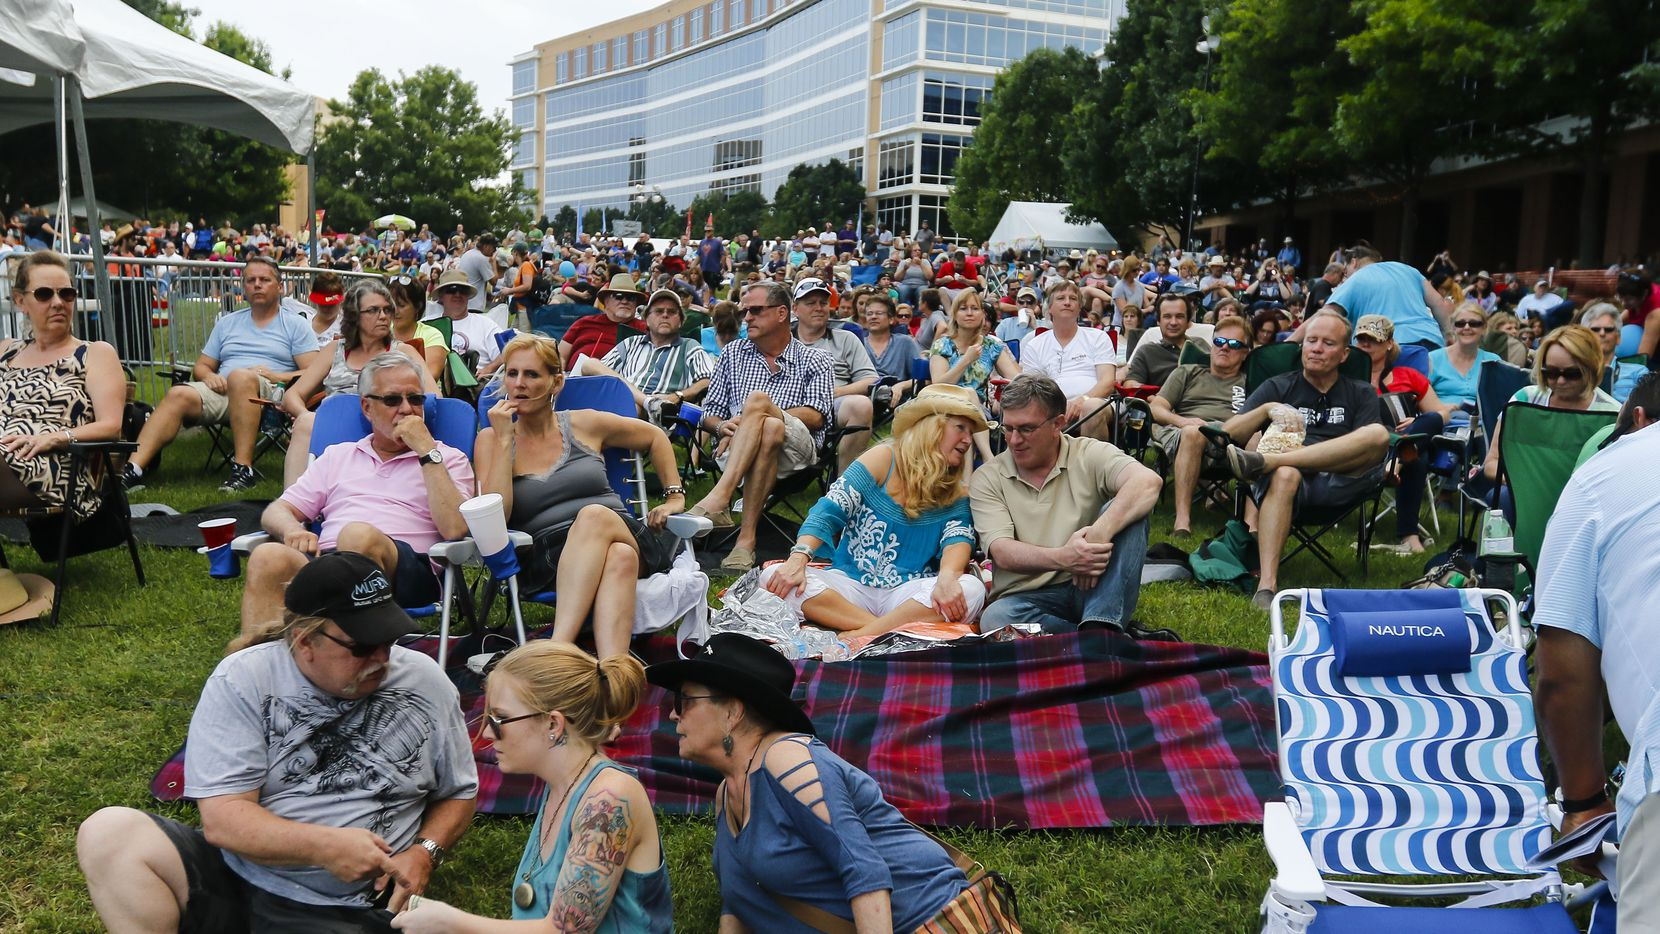 The crowd gathers for singer Leon Russell's performance on the Amphitheater Stage at the 2015 Wildflower Arts & Music Festival in Richardson.